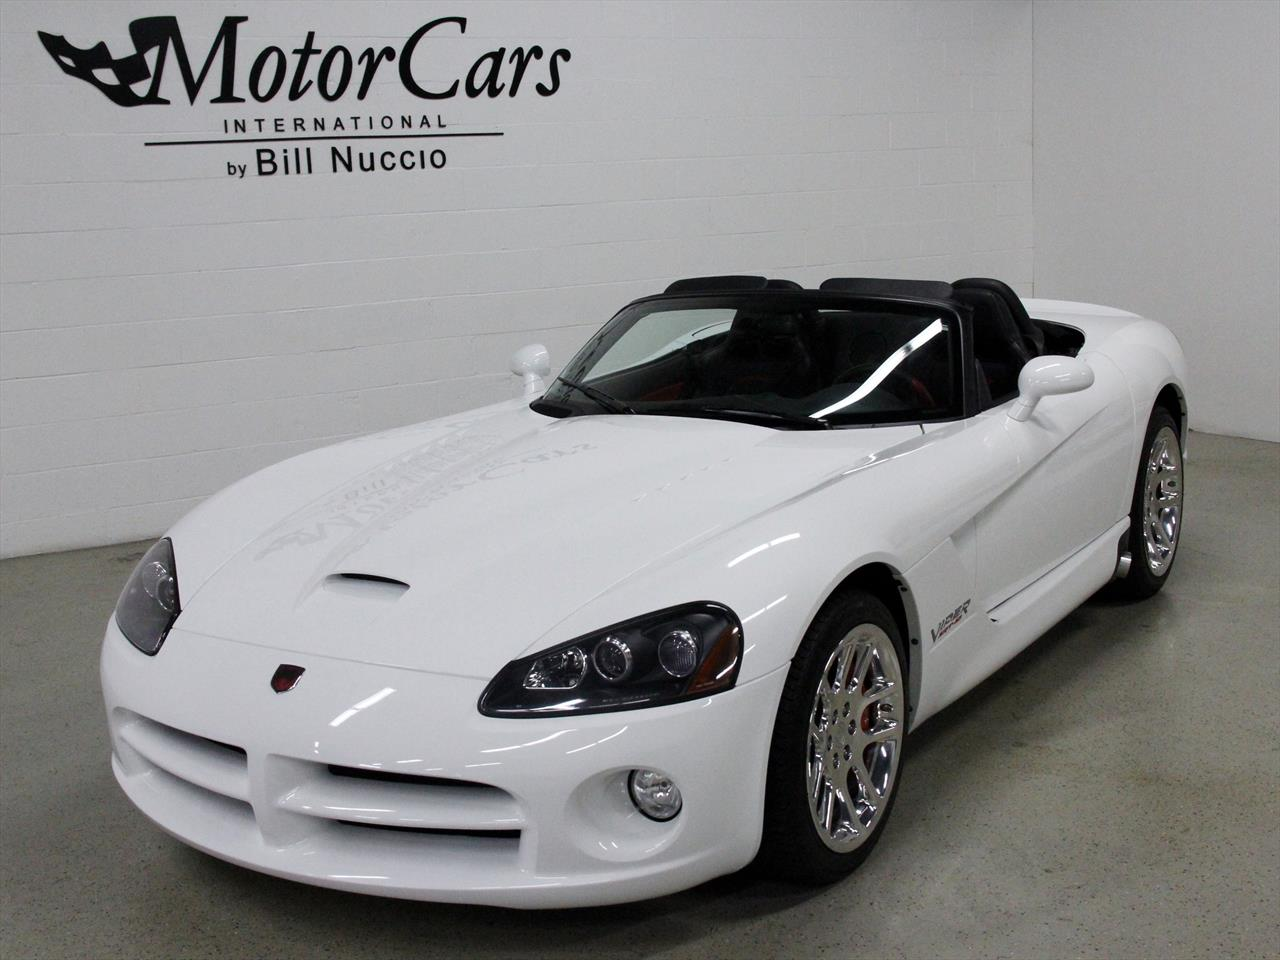 2004 Dodge Viper SRT 10 Mamba Edition